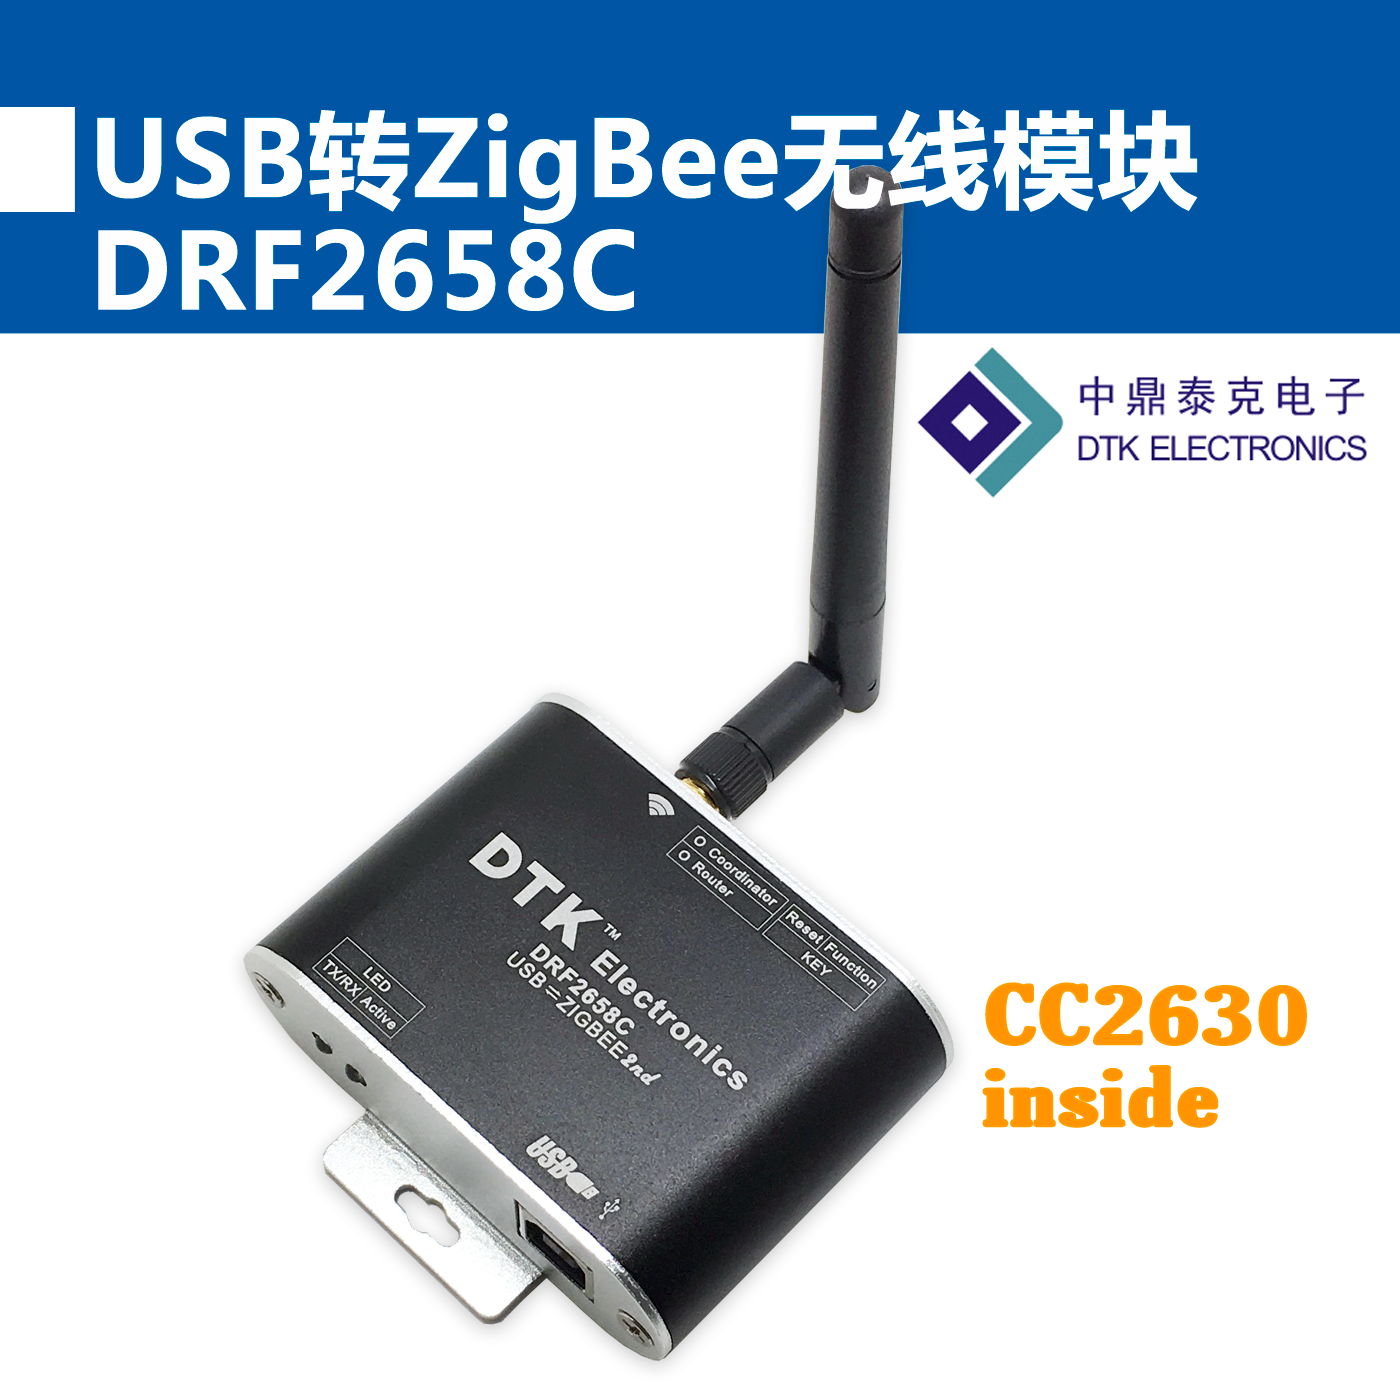 USB Switch to ZigBee Wireless Module (1.6 Km Transmission, CC2630 Chip, Far Beyond CC2530) usb serial rs485 rs232 zigbee cc2530 pa remote wireless module